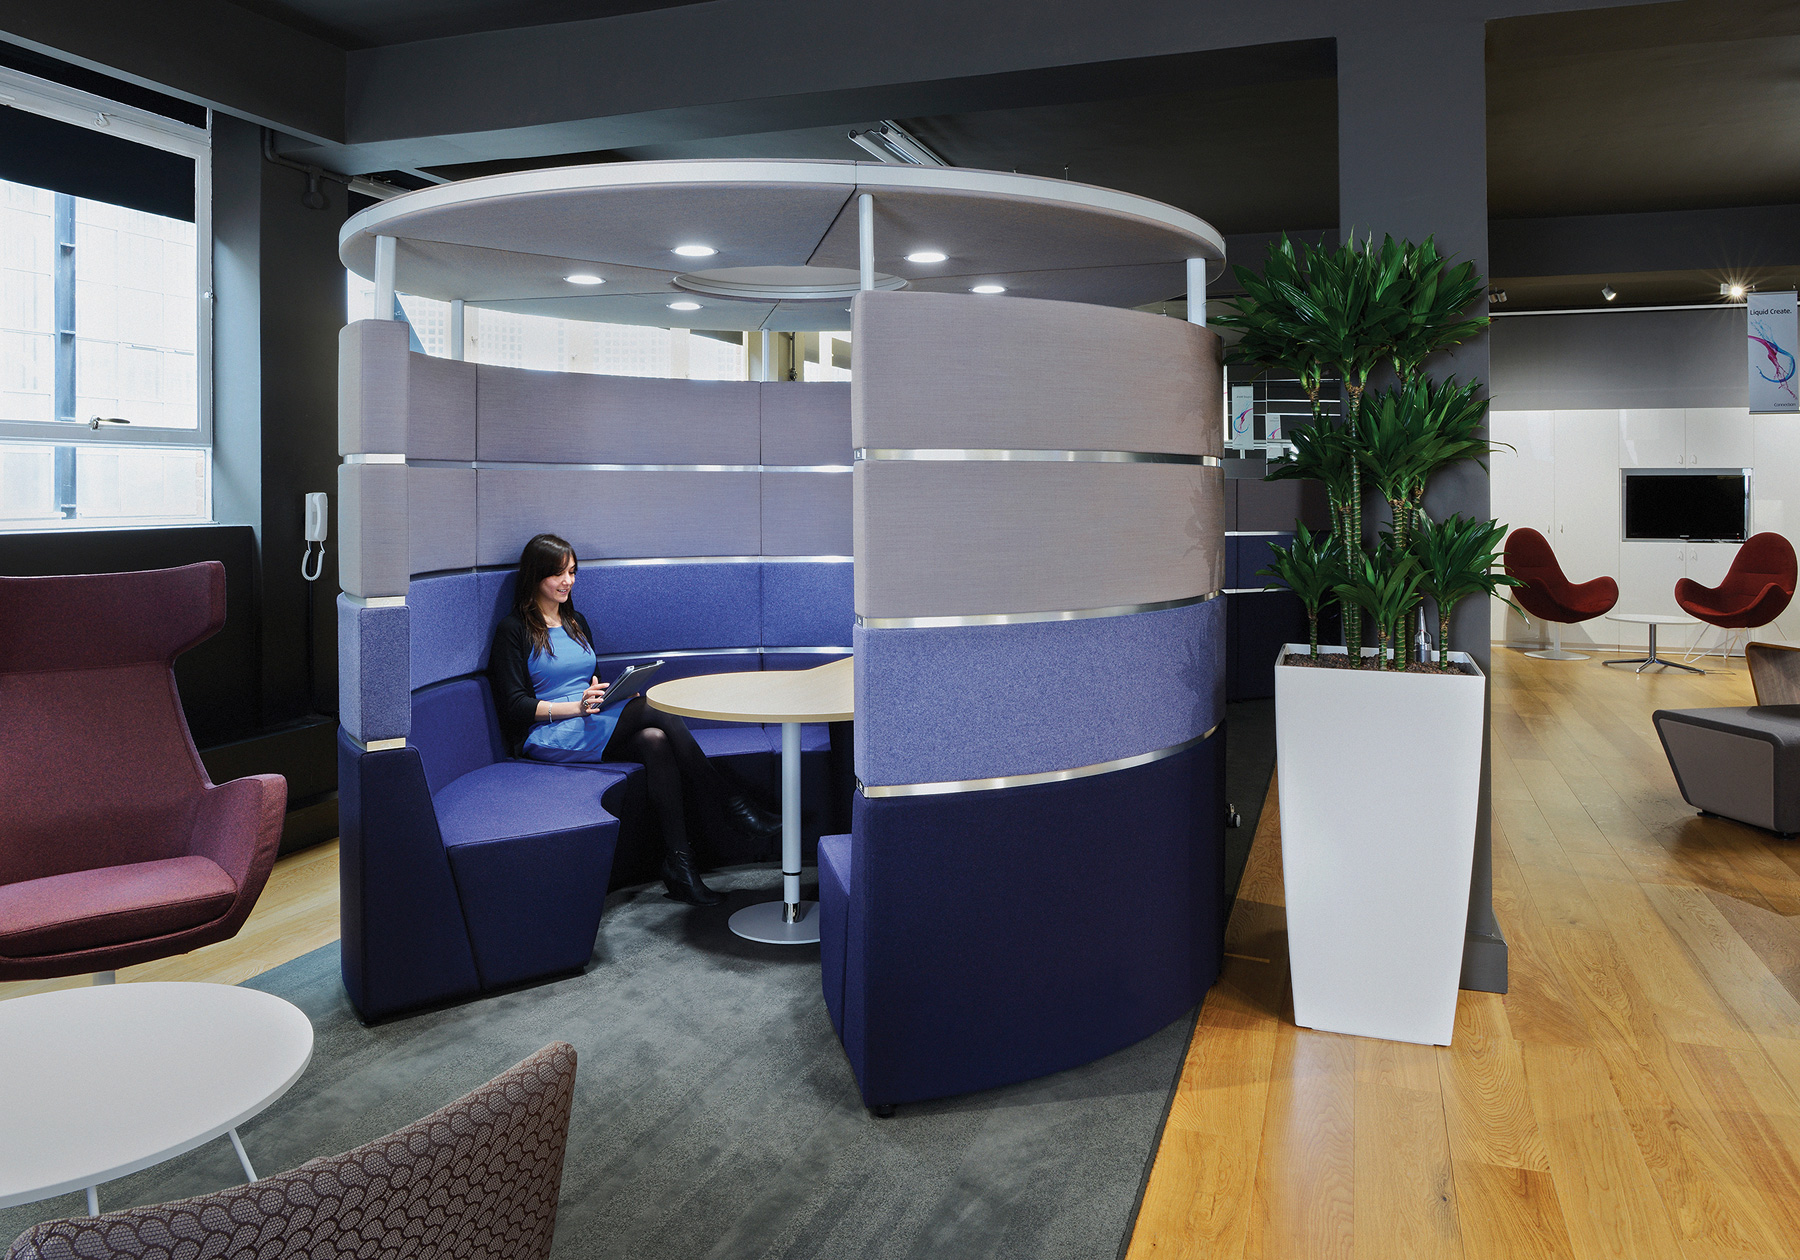 Palmer hamilton hive configured with acoustic canopy and lighting as a small meeting room within a room